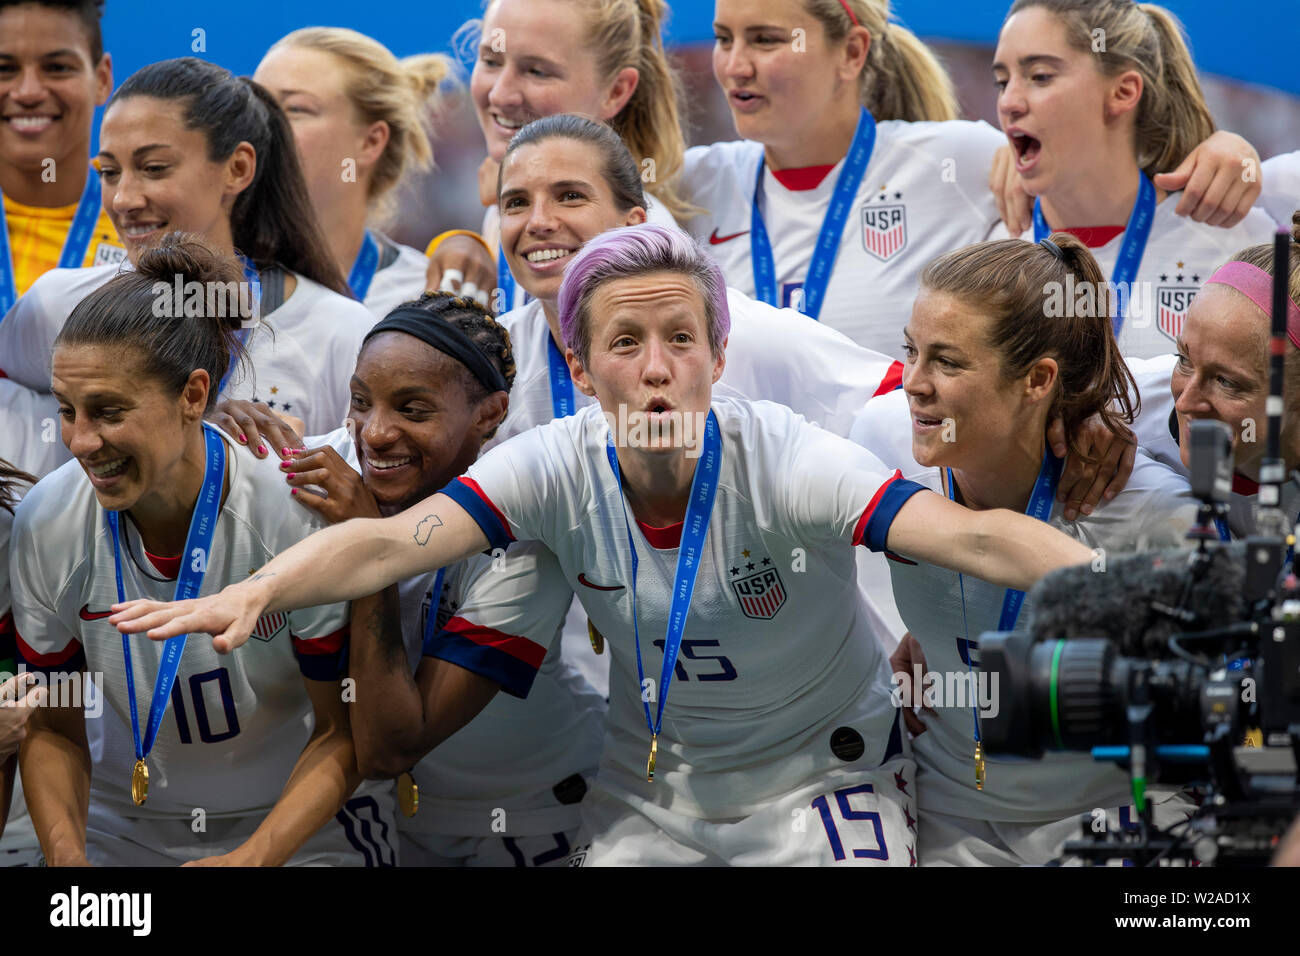 Lyon, France. 07th July, 2019. Megan Rapinoe of the United States and United States sealing commemorates after the United States won the 2019 FIFA Women's World Cup Final against the Netherlands at the Lyon Stadium in Lyon, France. Credit: Foto Arena LTDA/Alamy Live News - Stock Image